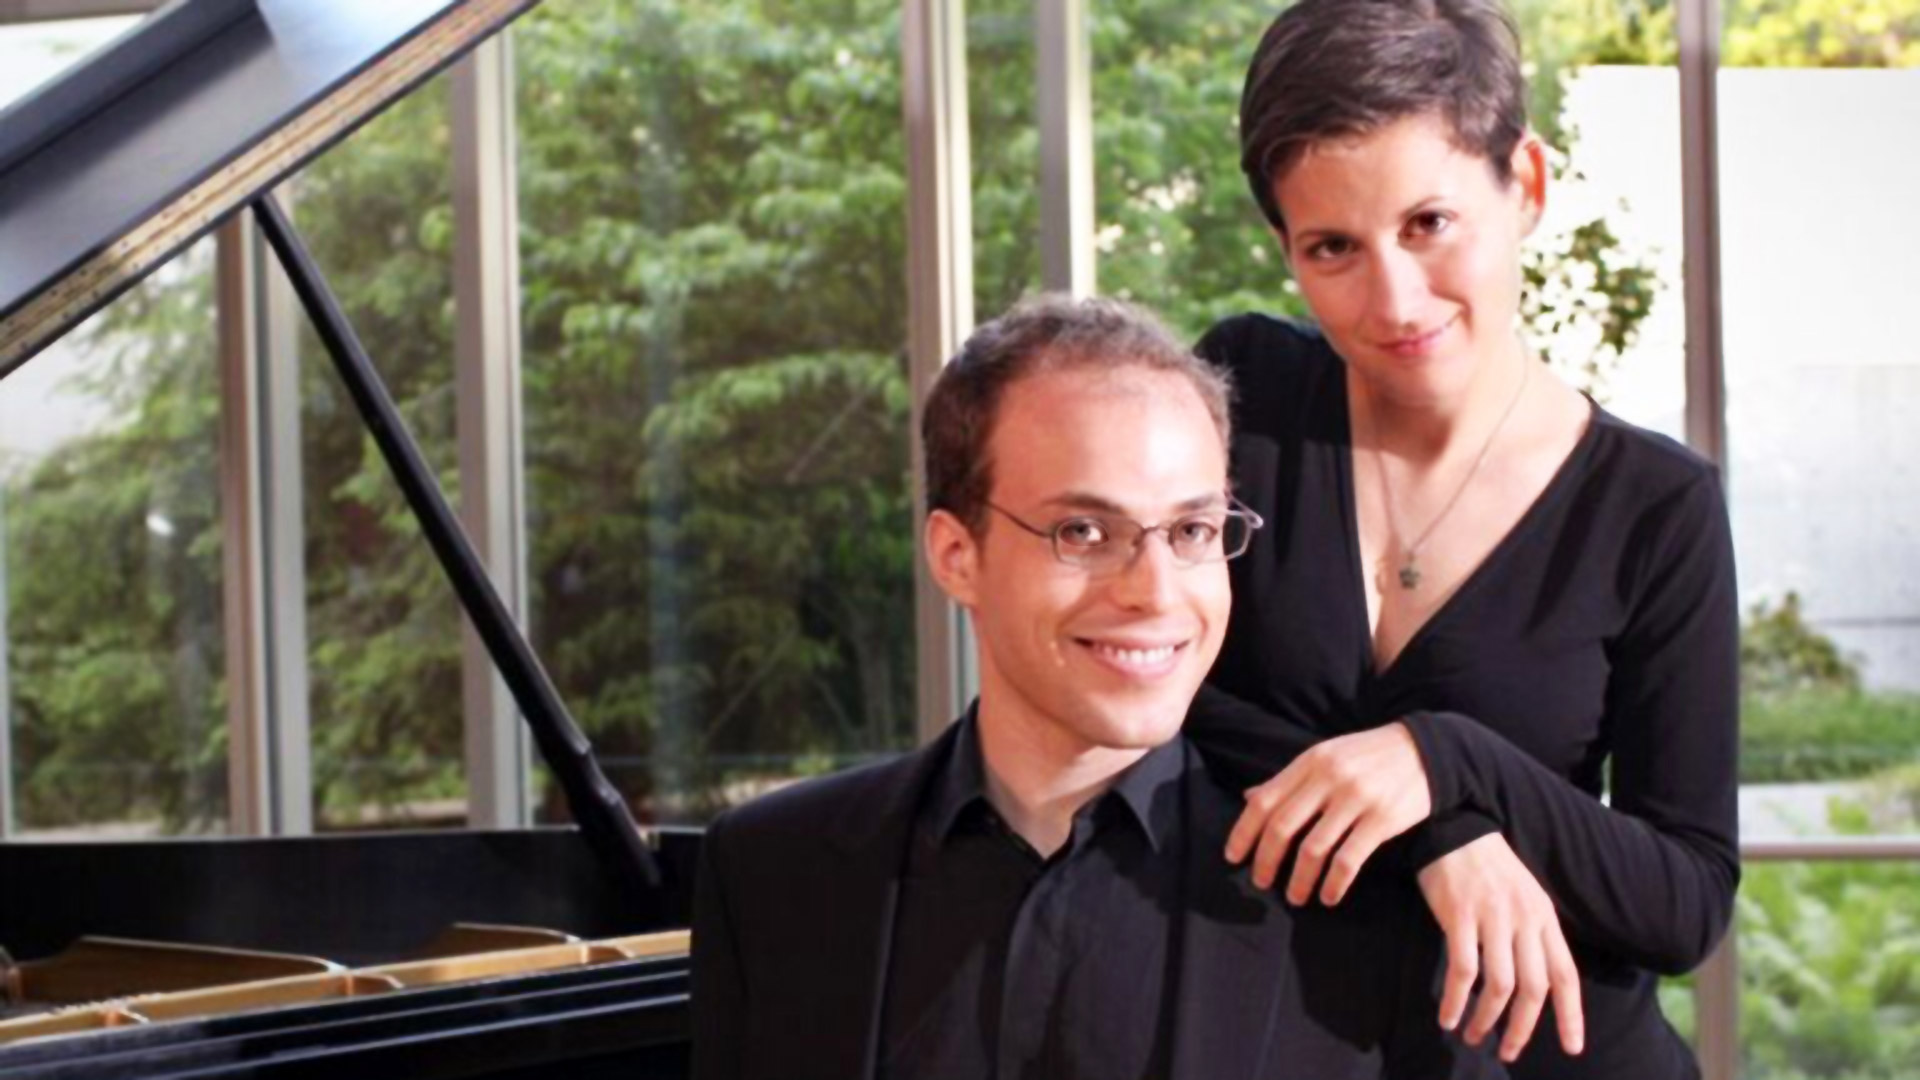 Anna Polonsky and Orion Weiss